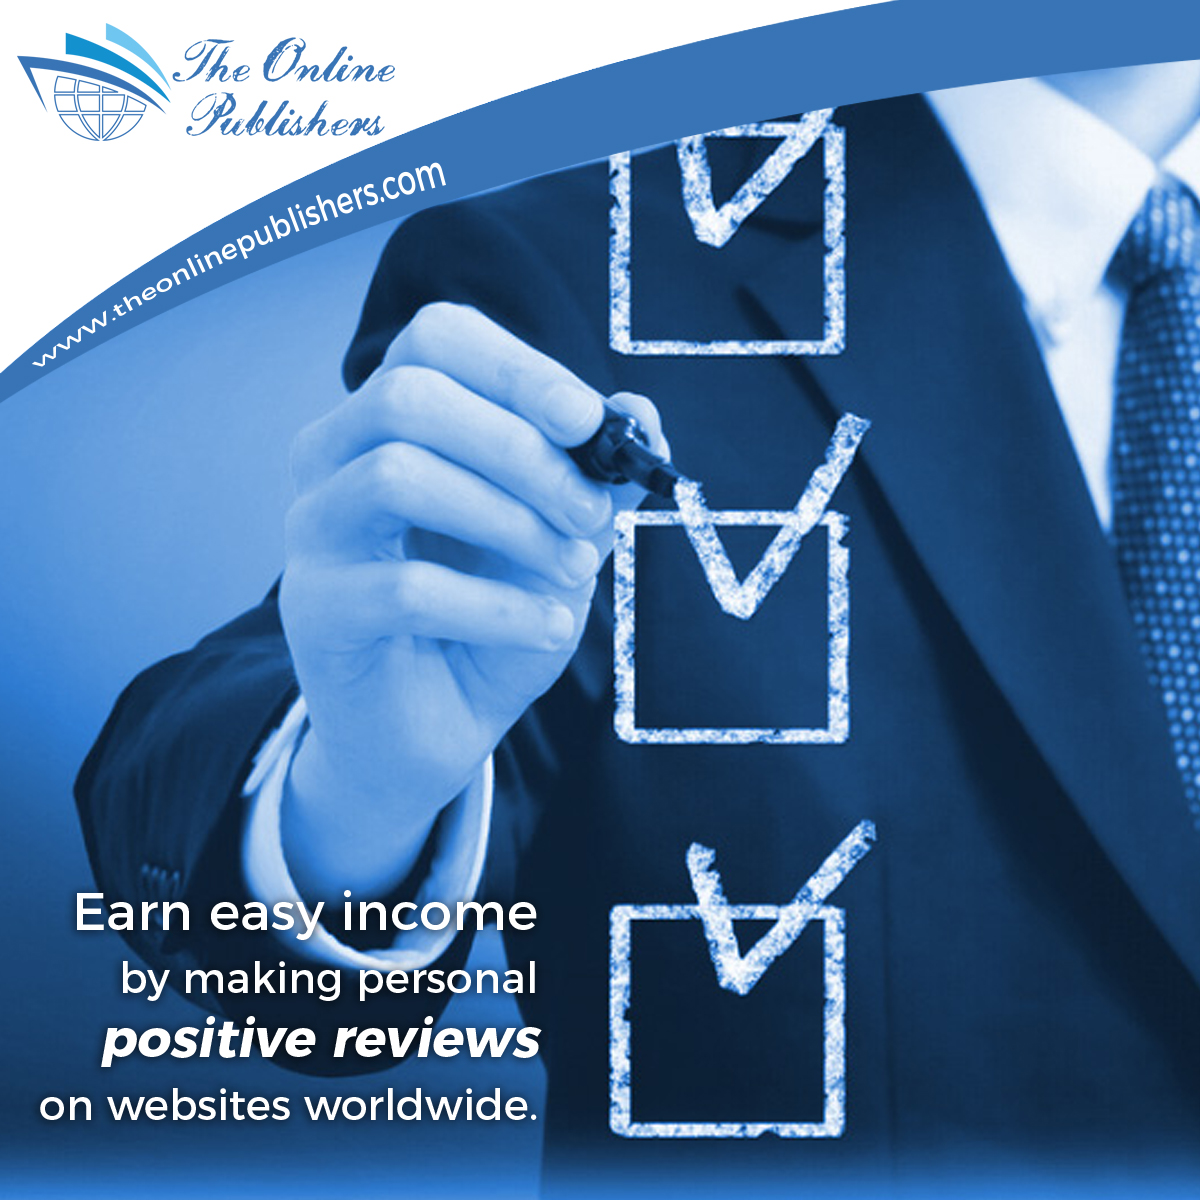 Earn money by working as an online reviewer